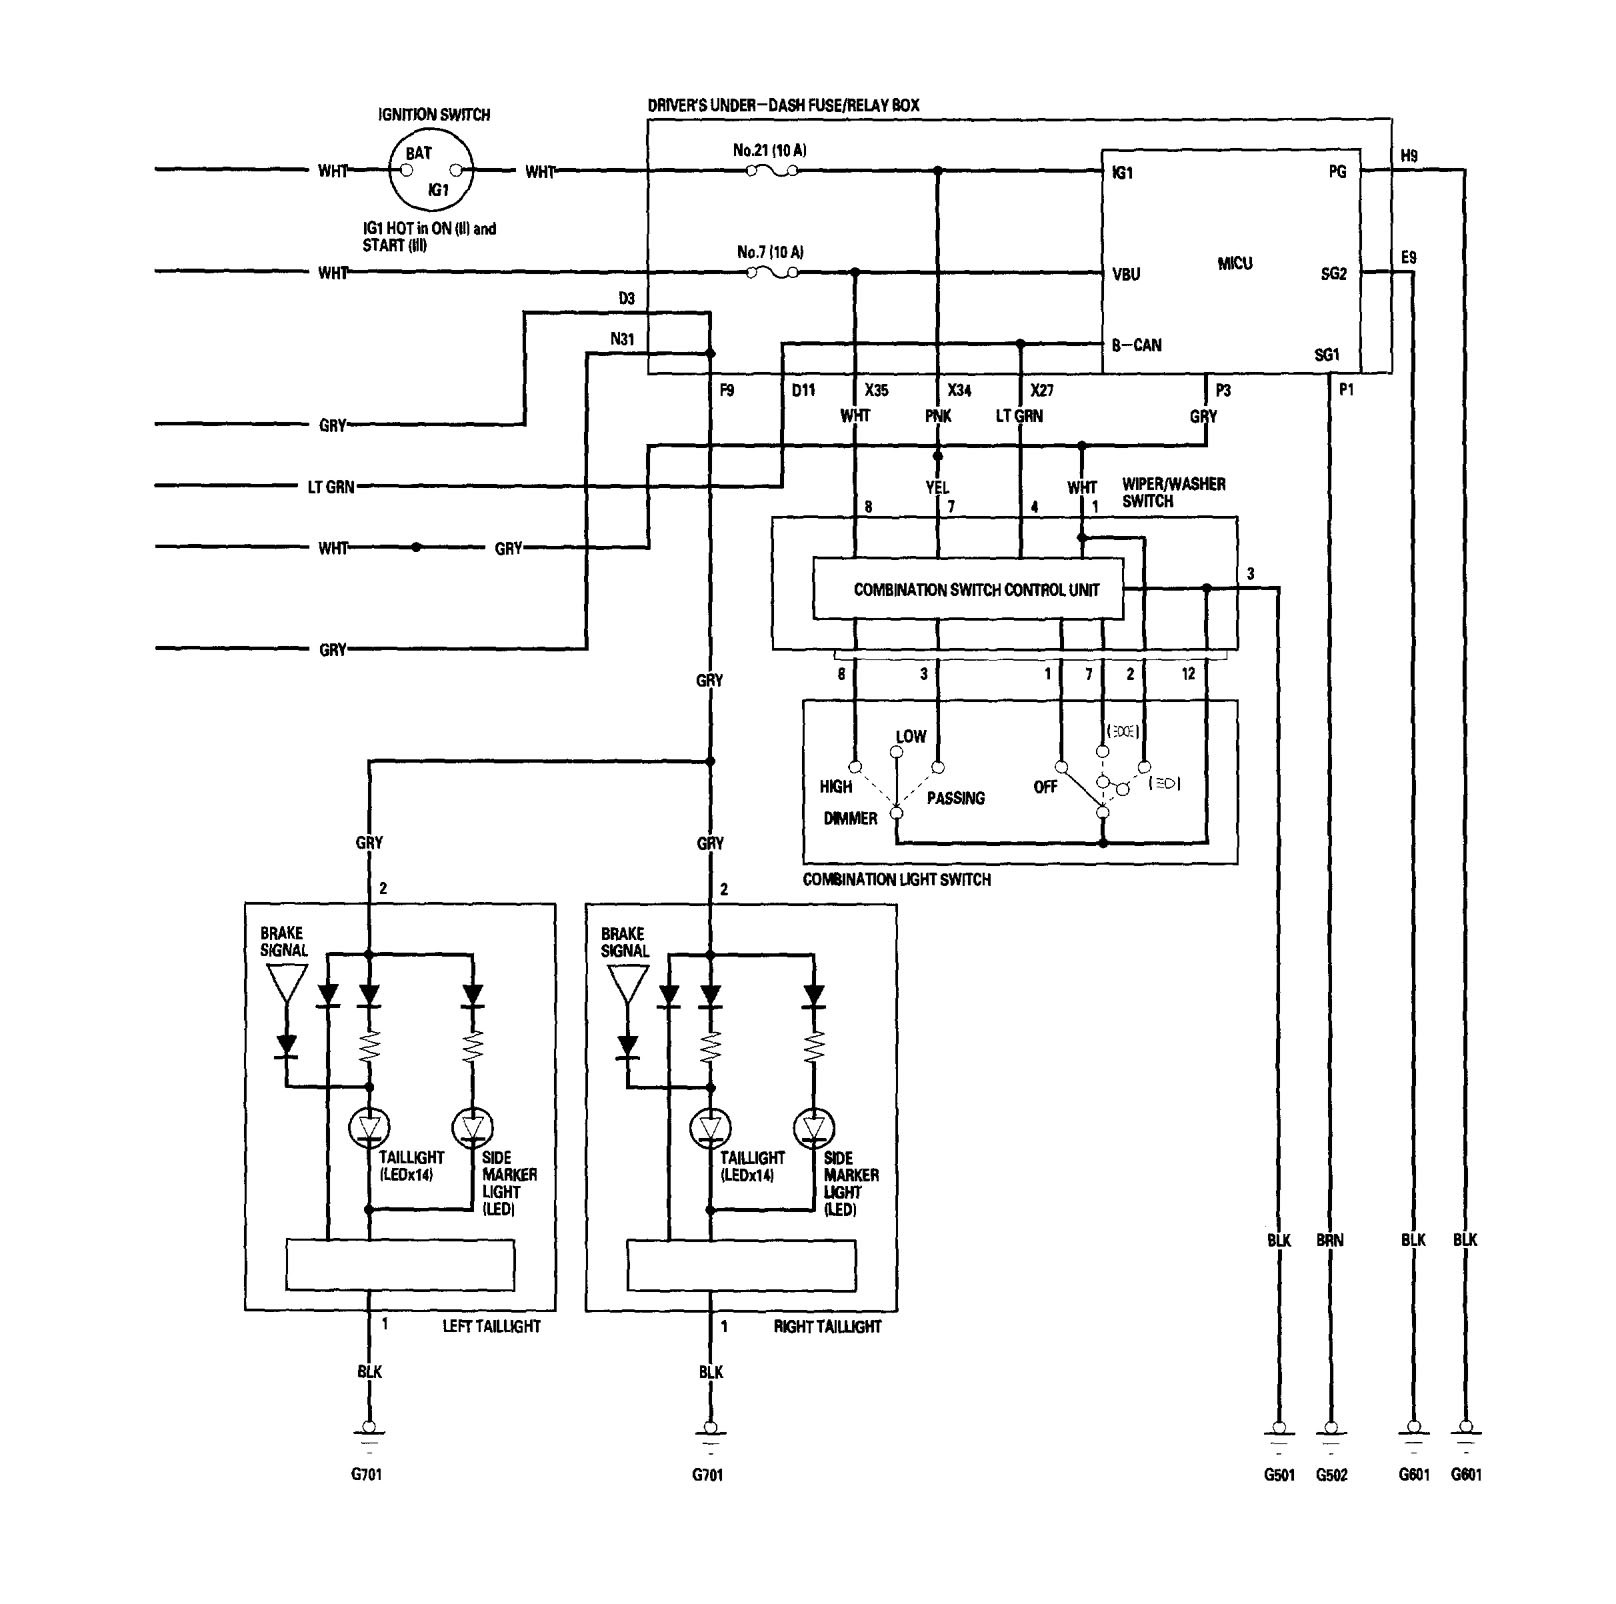 1995 Volvo 960 Fuse Box Auto Electrical Wiring Diagram 2003 Wagon